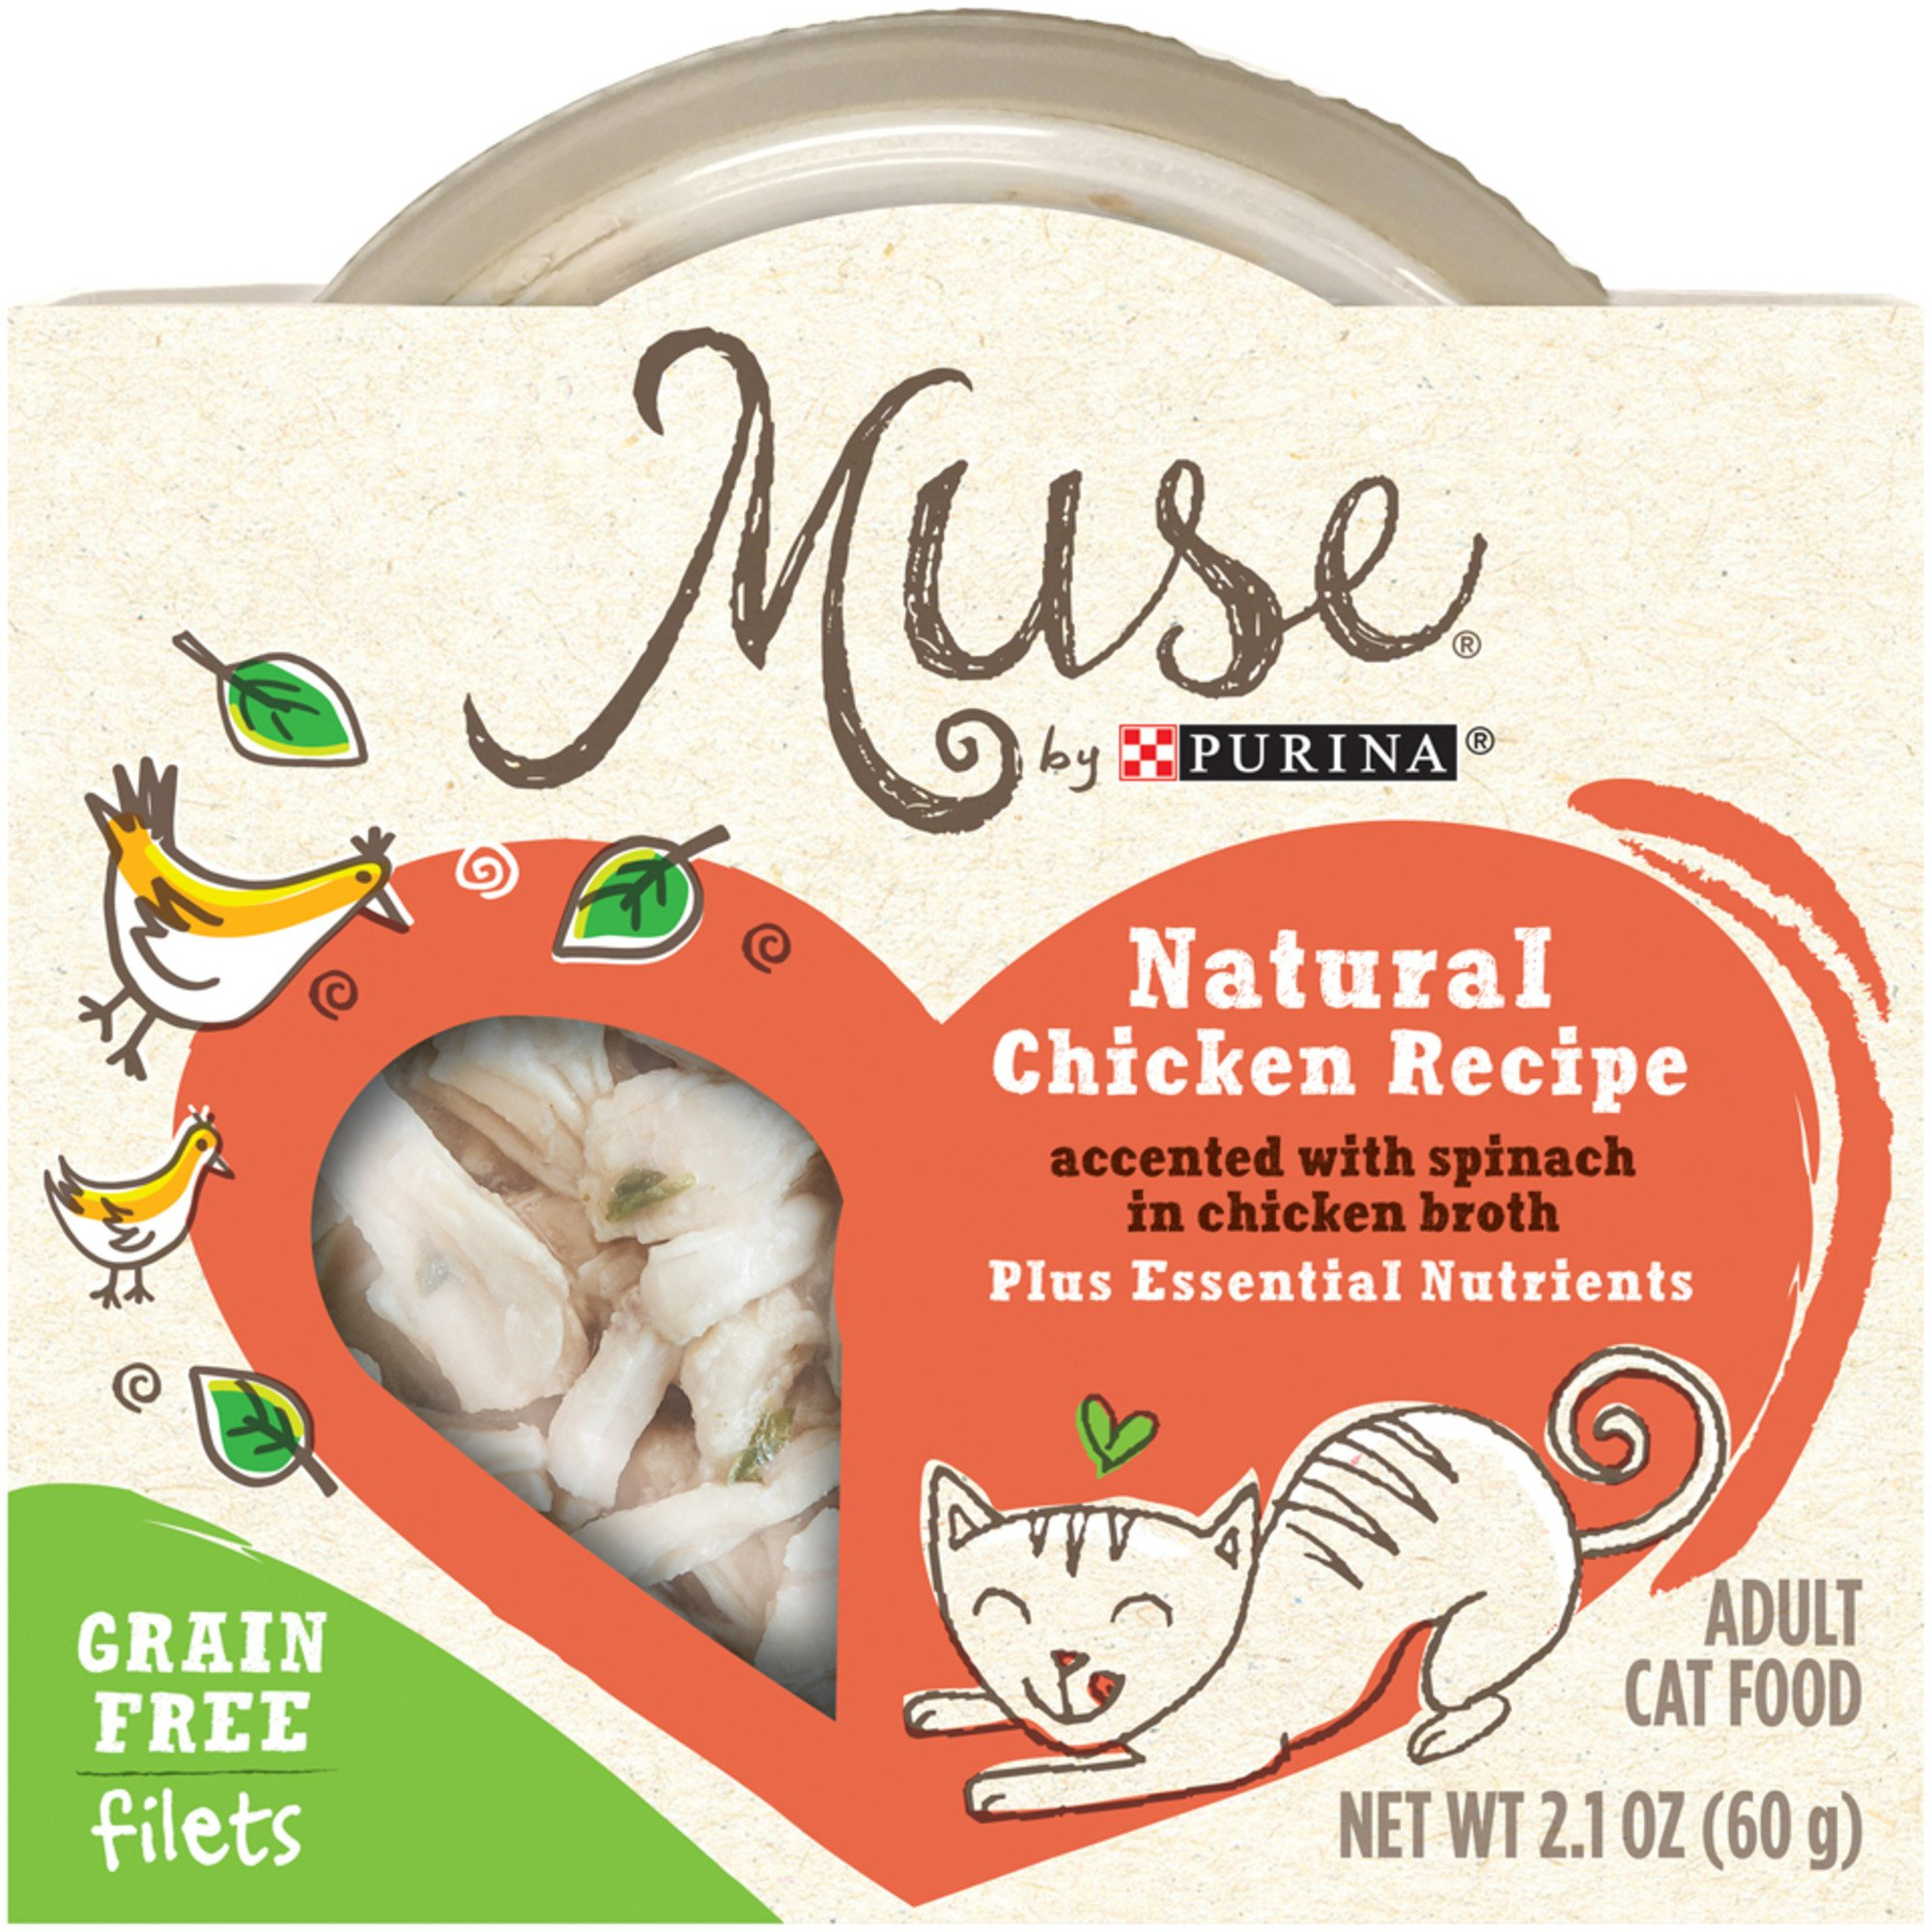 Muse by Purina Natural Chicken Recipe Accented with Spinach in Chicken Broth Cat Food